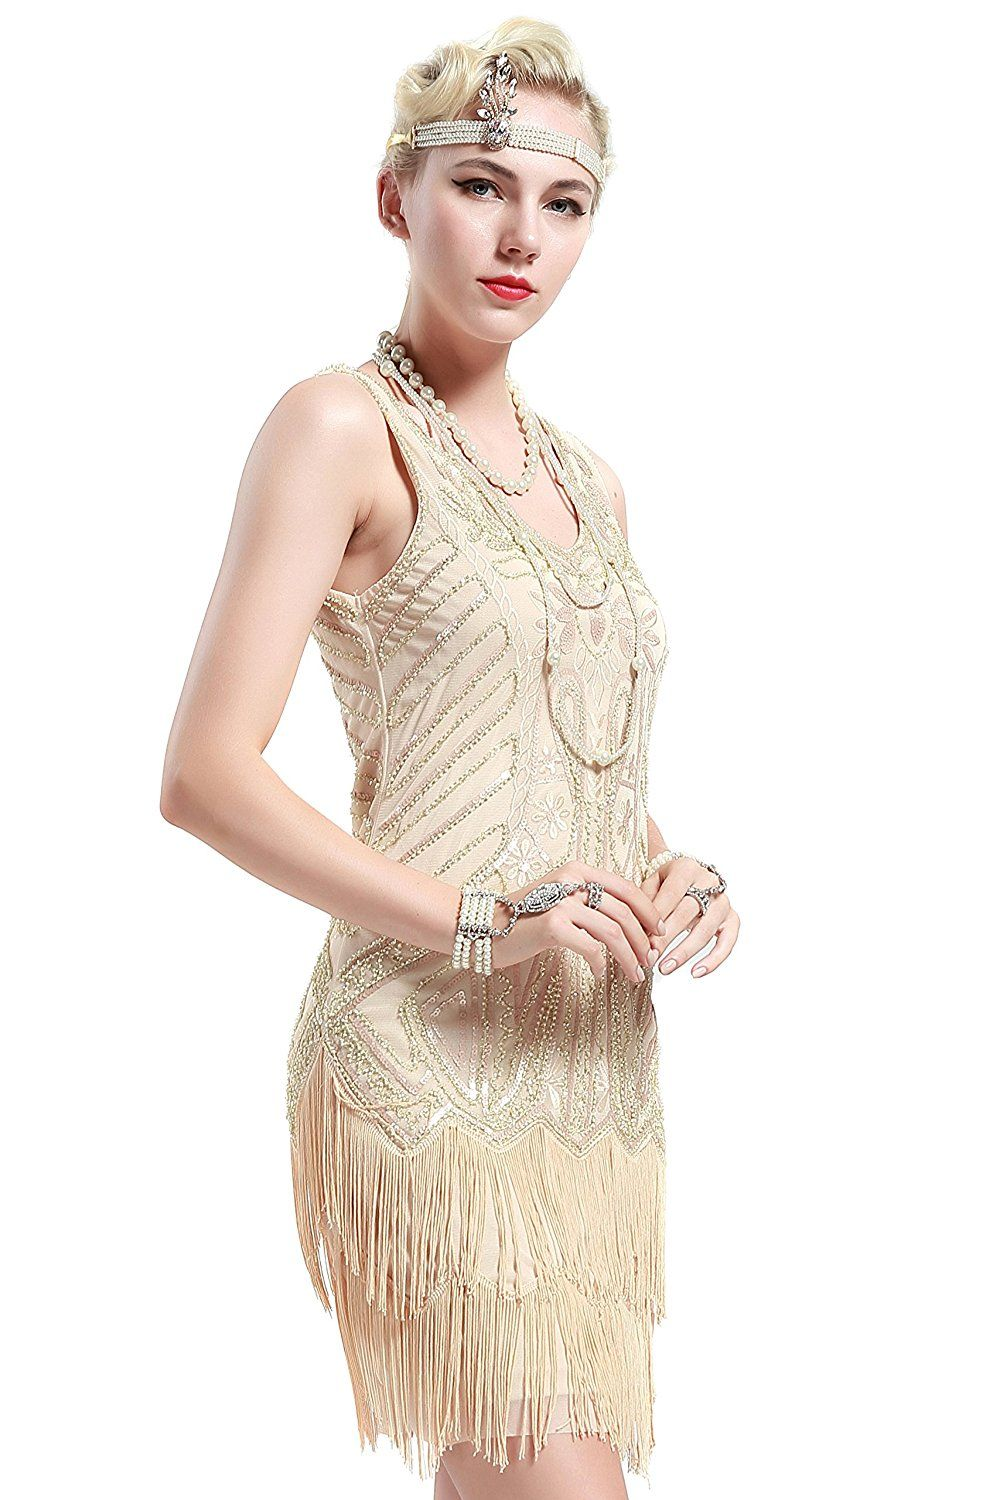 1920's Style Dresses: Flapper Dresses to Gatsby dresses ...